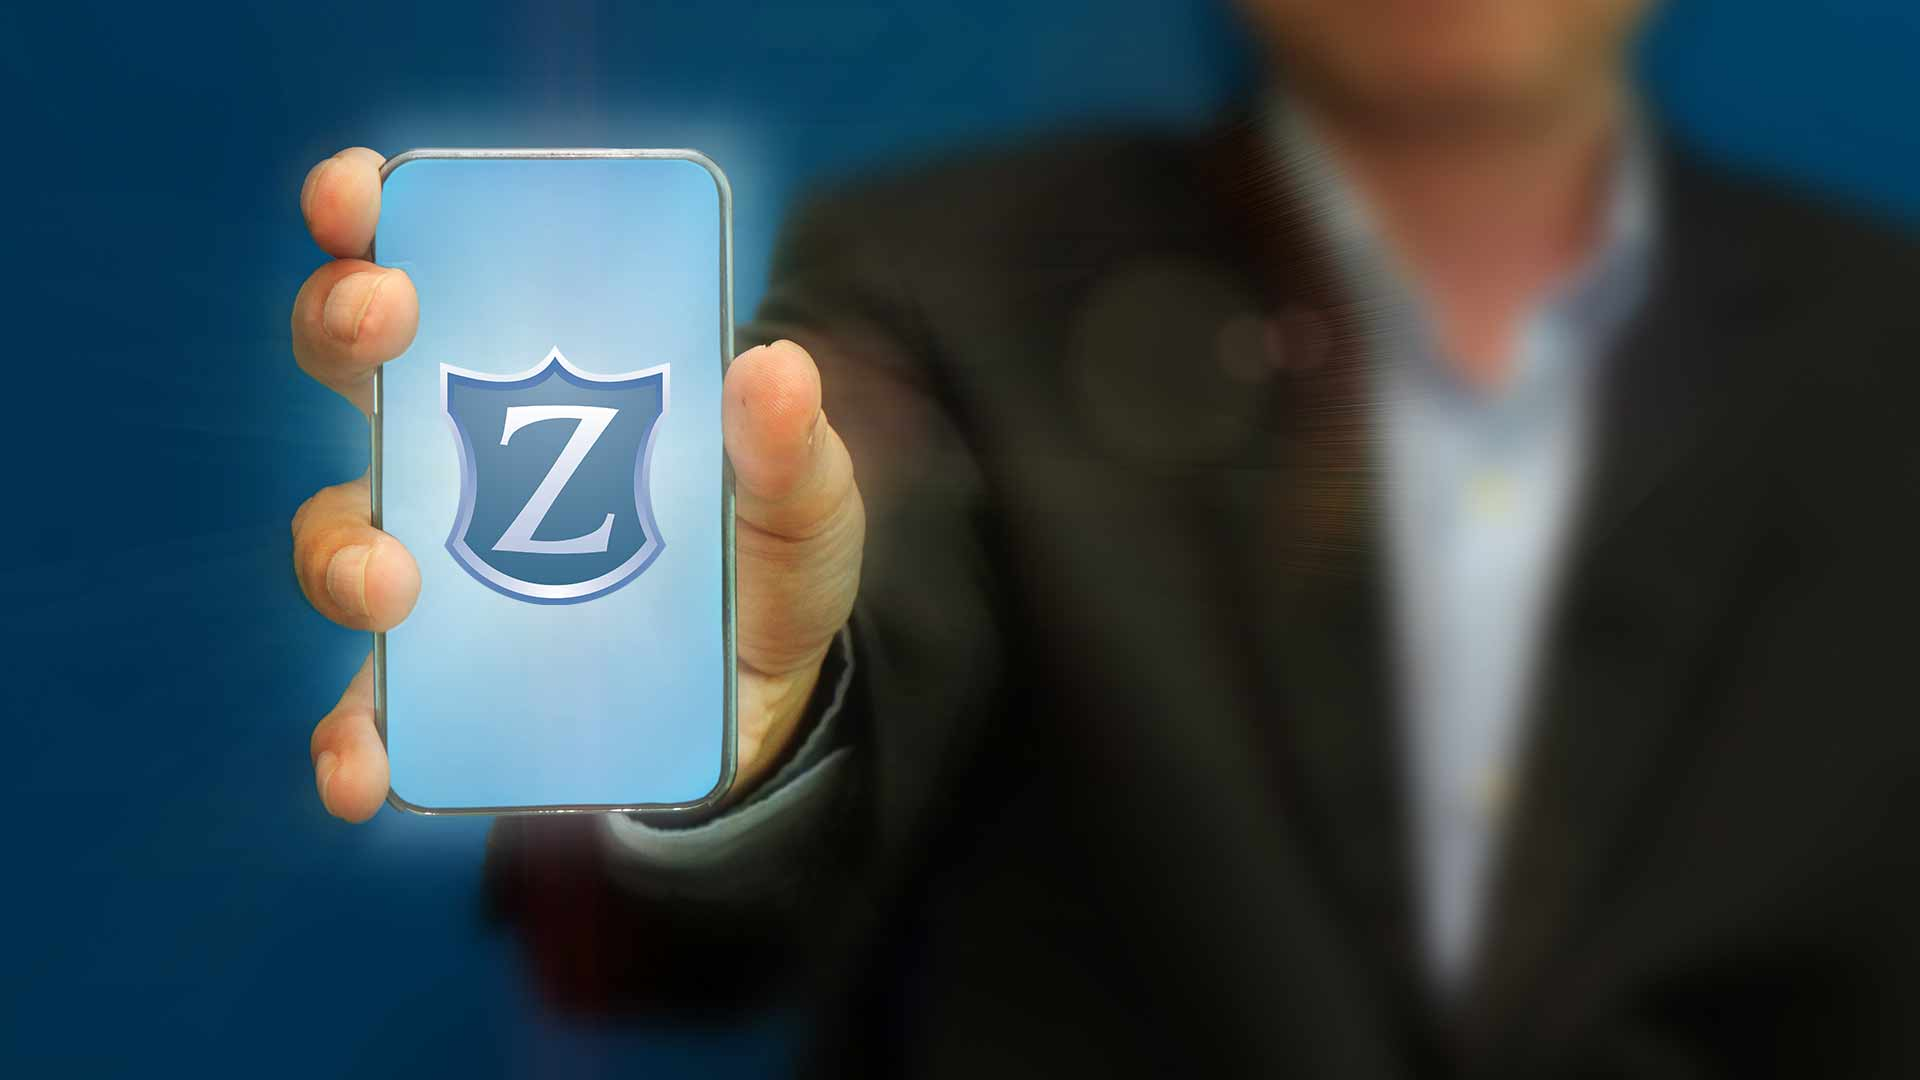 Zehr Insurance Brokers Ltd